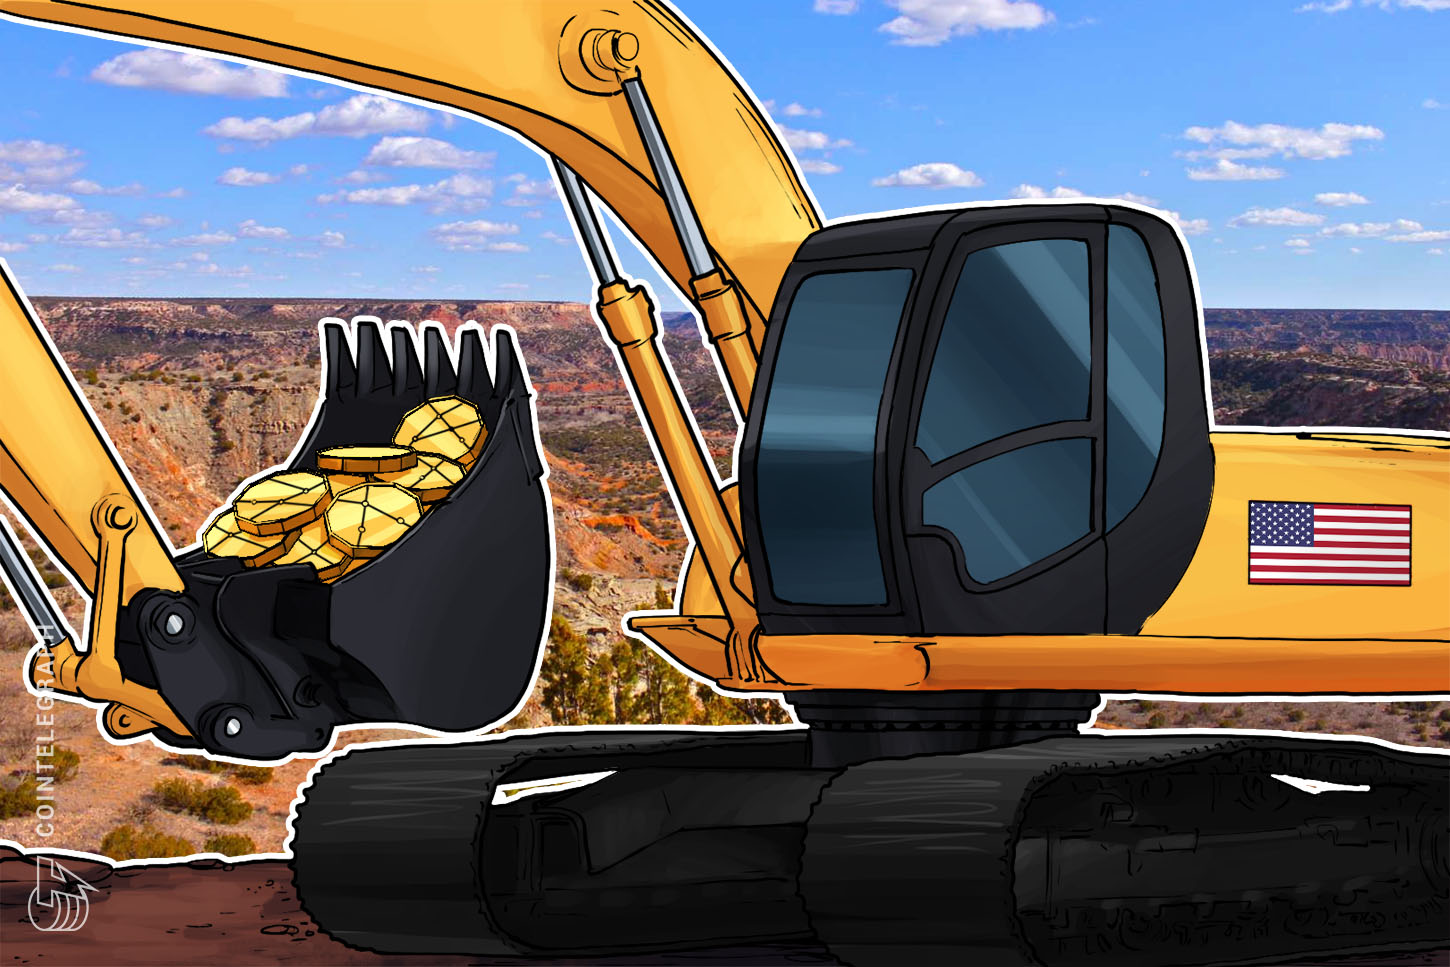 Bitcoin Mining Giant Bitmain to Invest $500 Million in ...